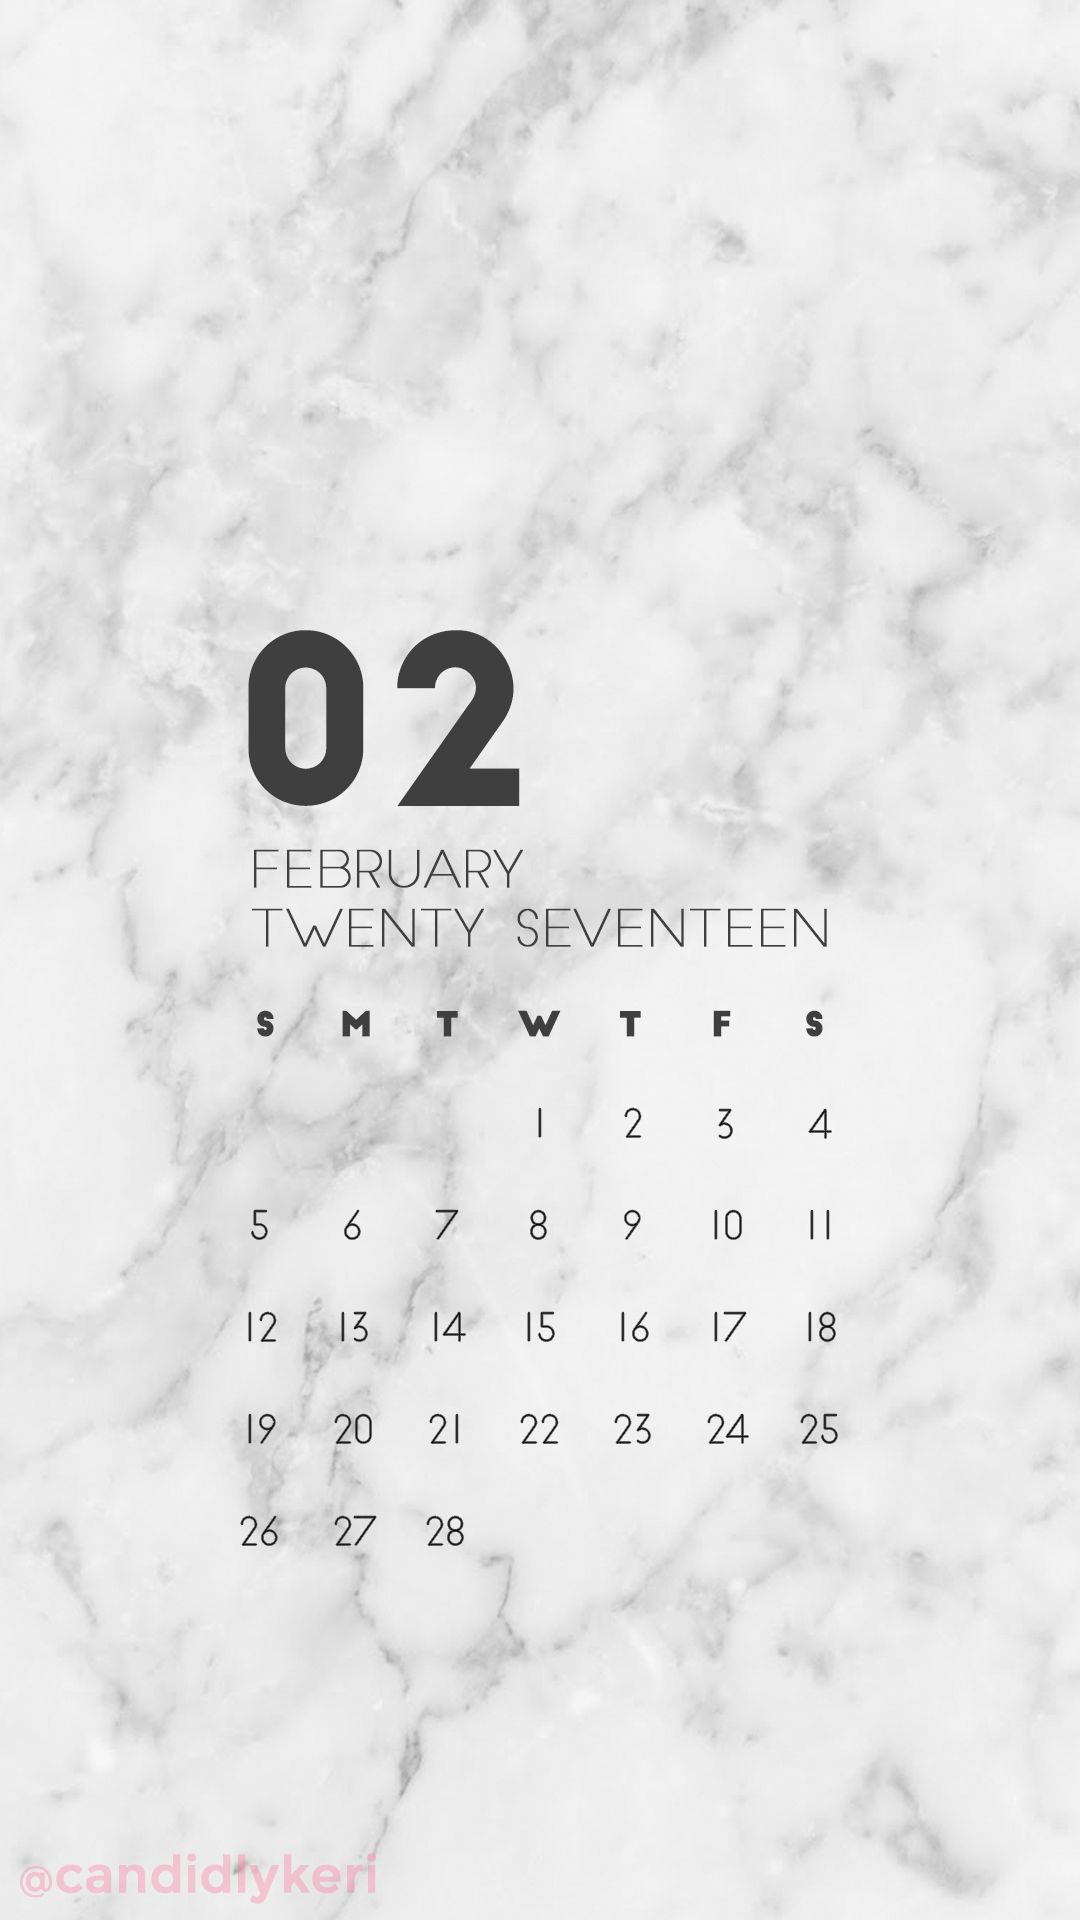 Marble Organized Clean February Calendar 2017 Wallpaper You Can Download For Free On The Blog For Any D February Wallpaper Calendar Wallpaper Iphone Wallpaper